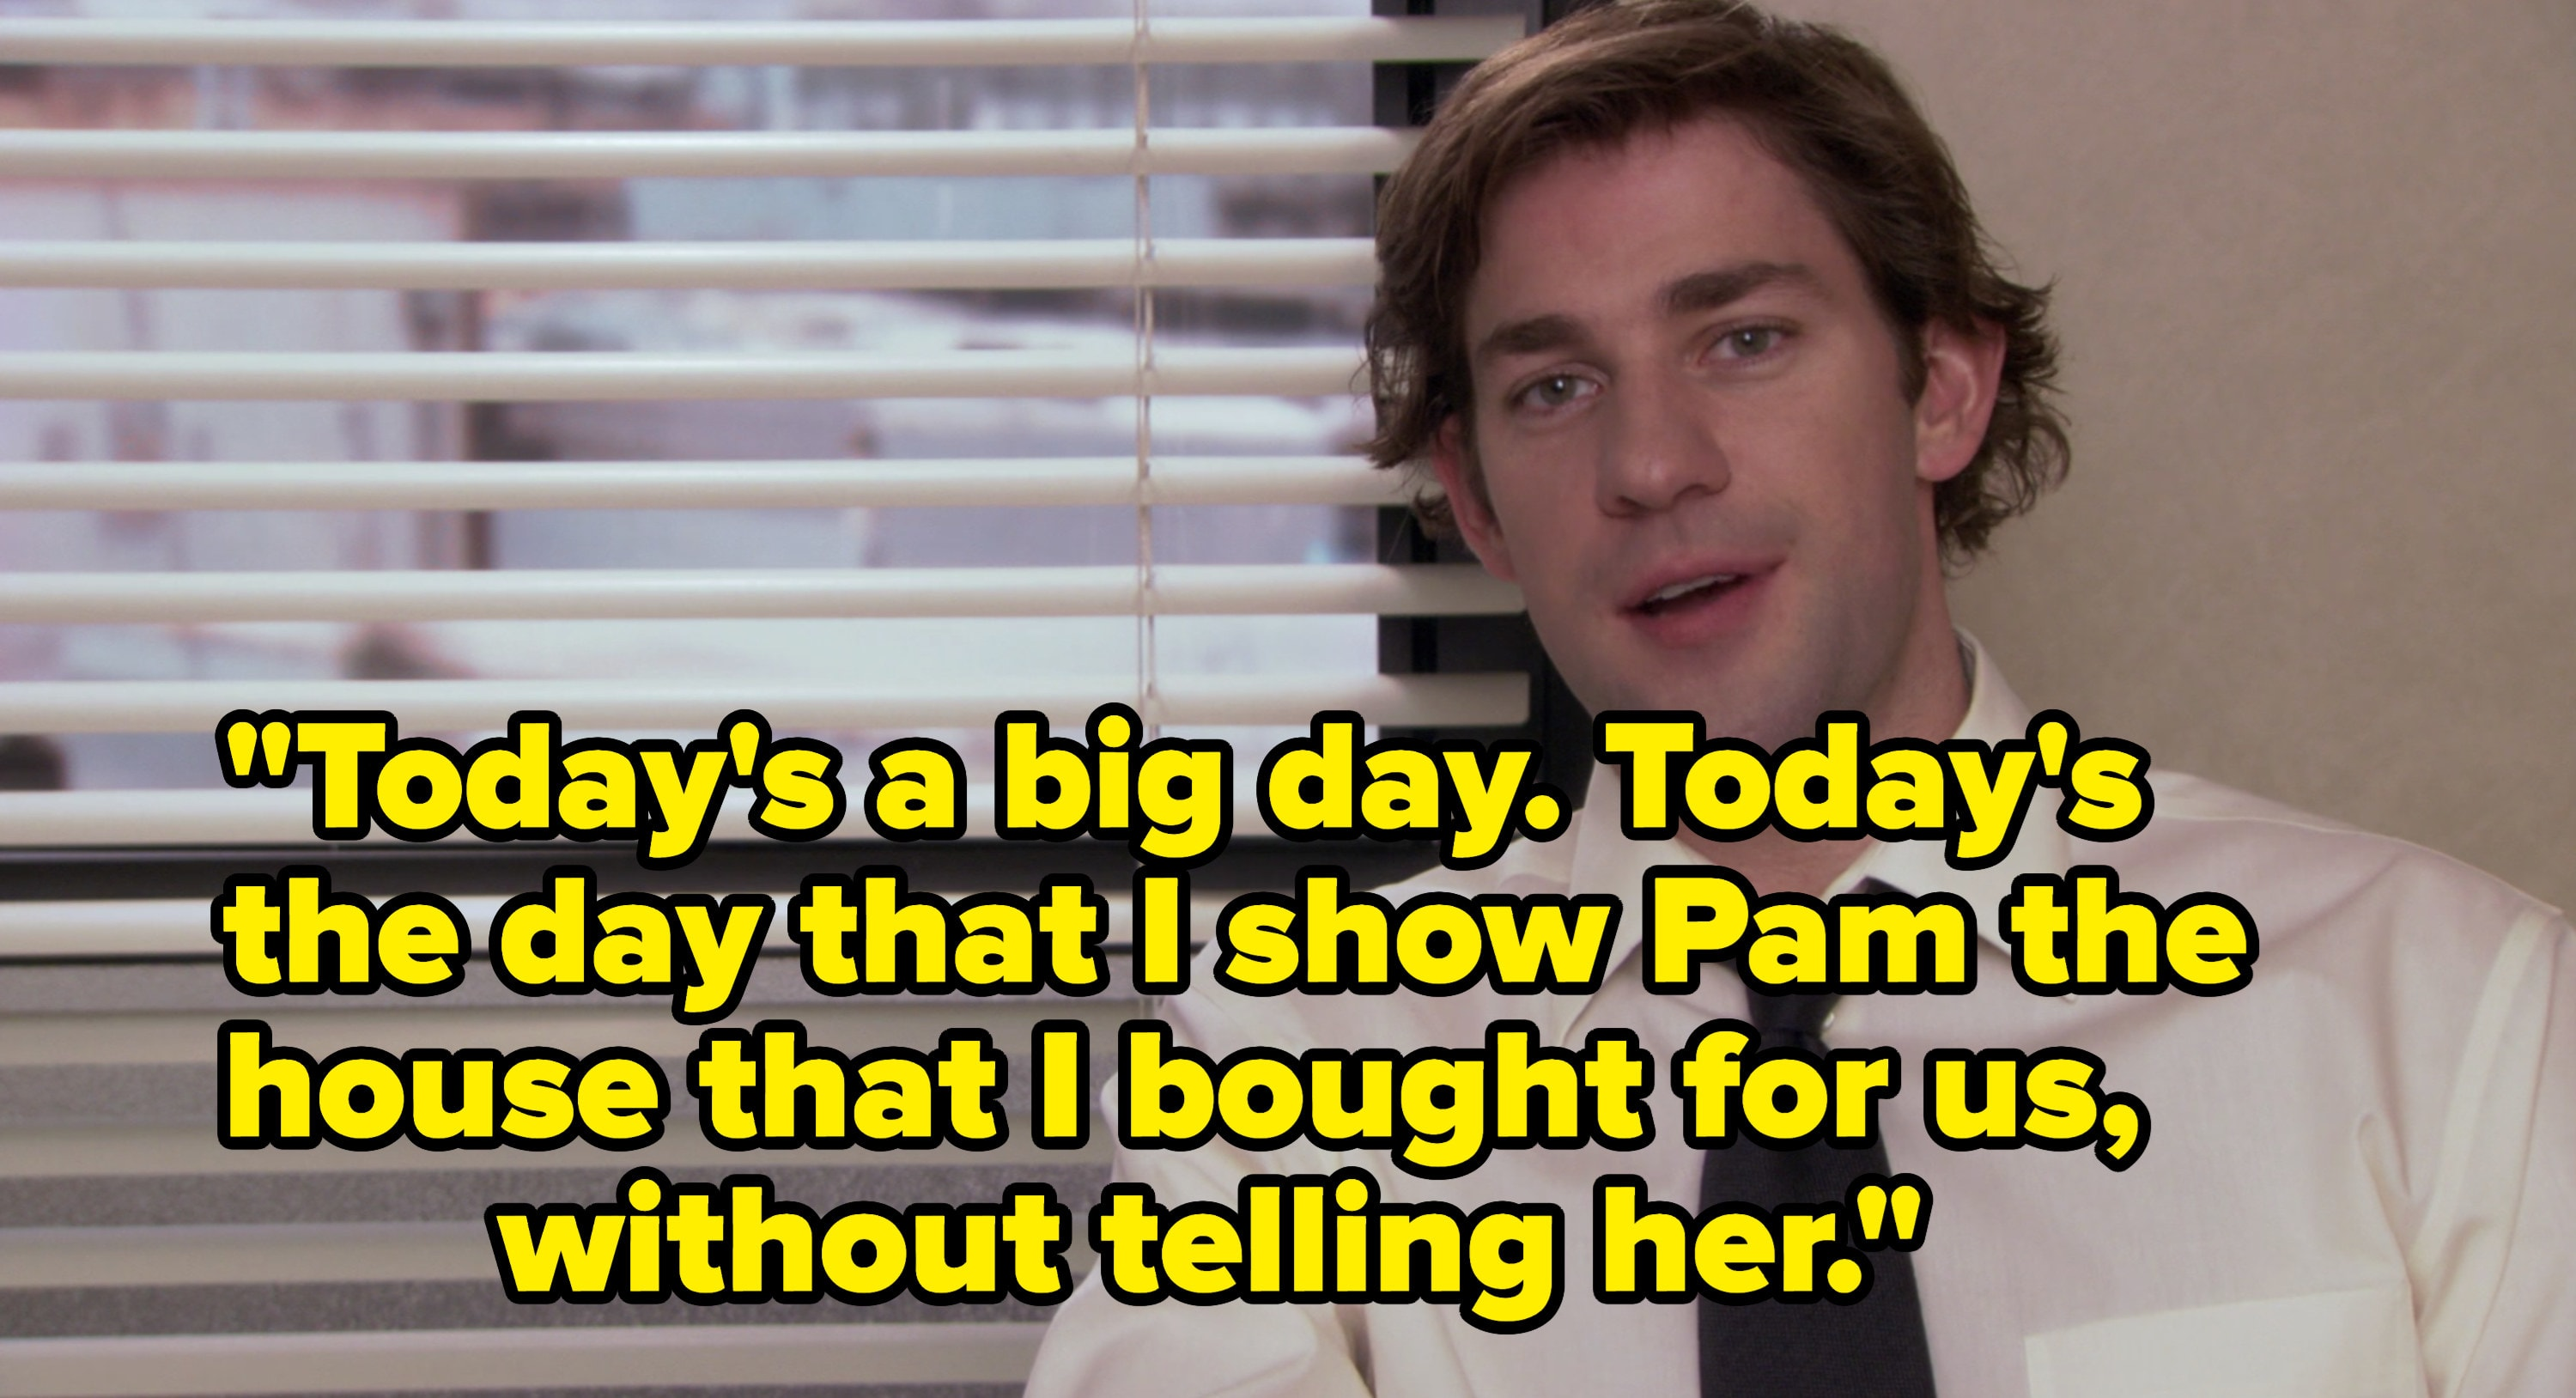 Jim in the confessional saying he's going to show Pam the house he bought without her knowledge